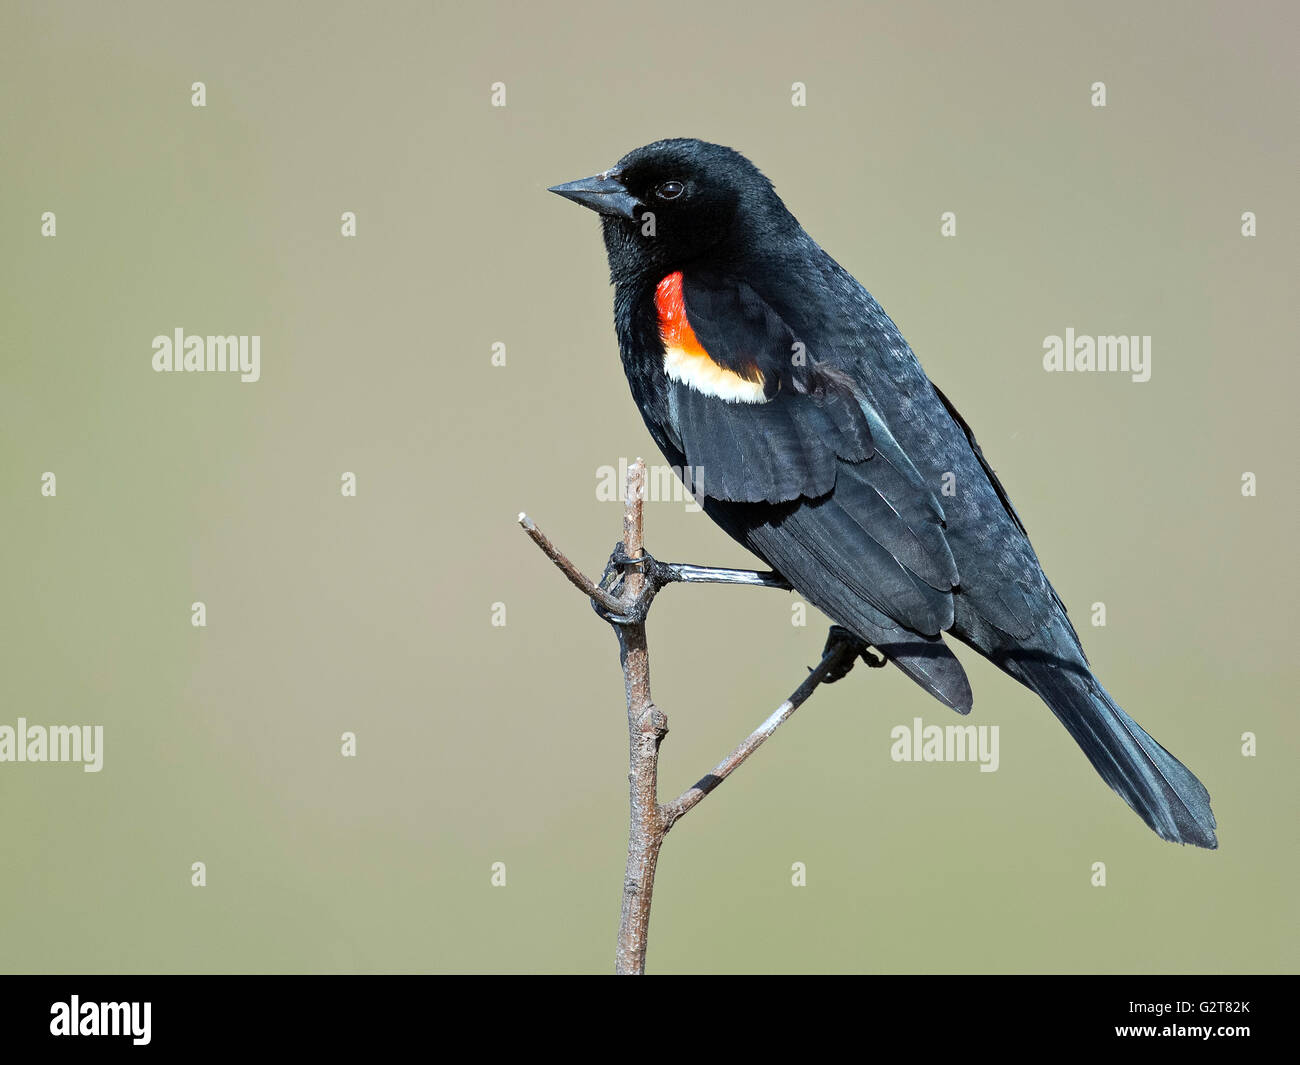 Male Red-winged Blackbird - Stock Image